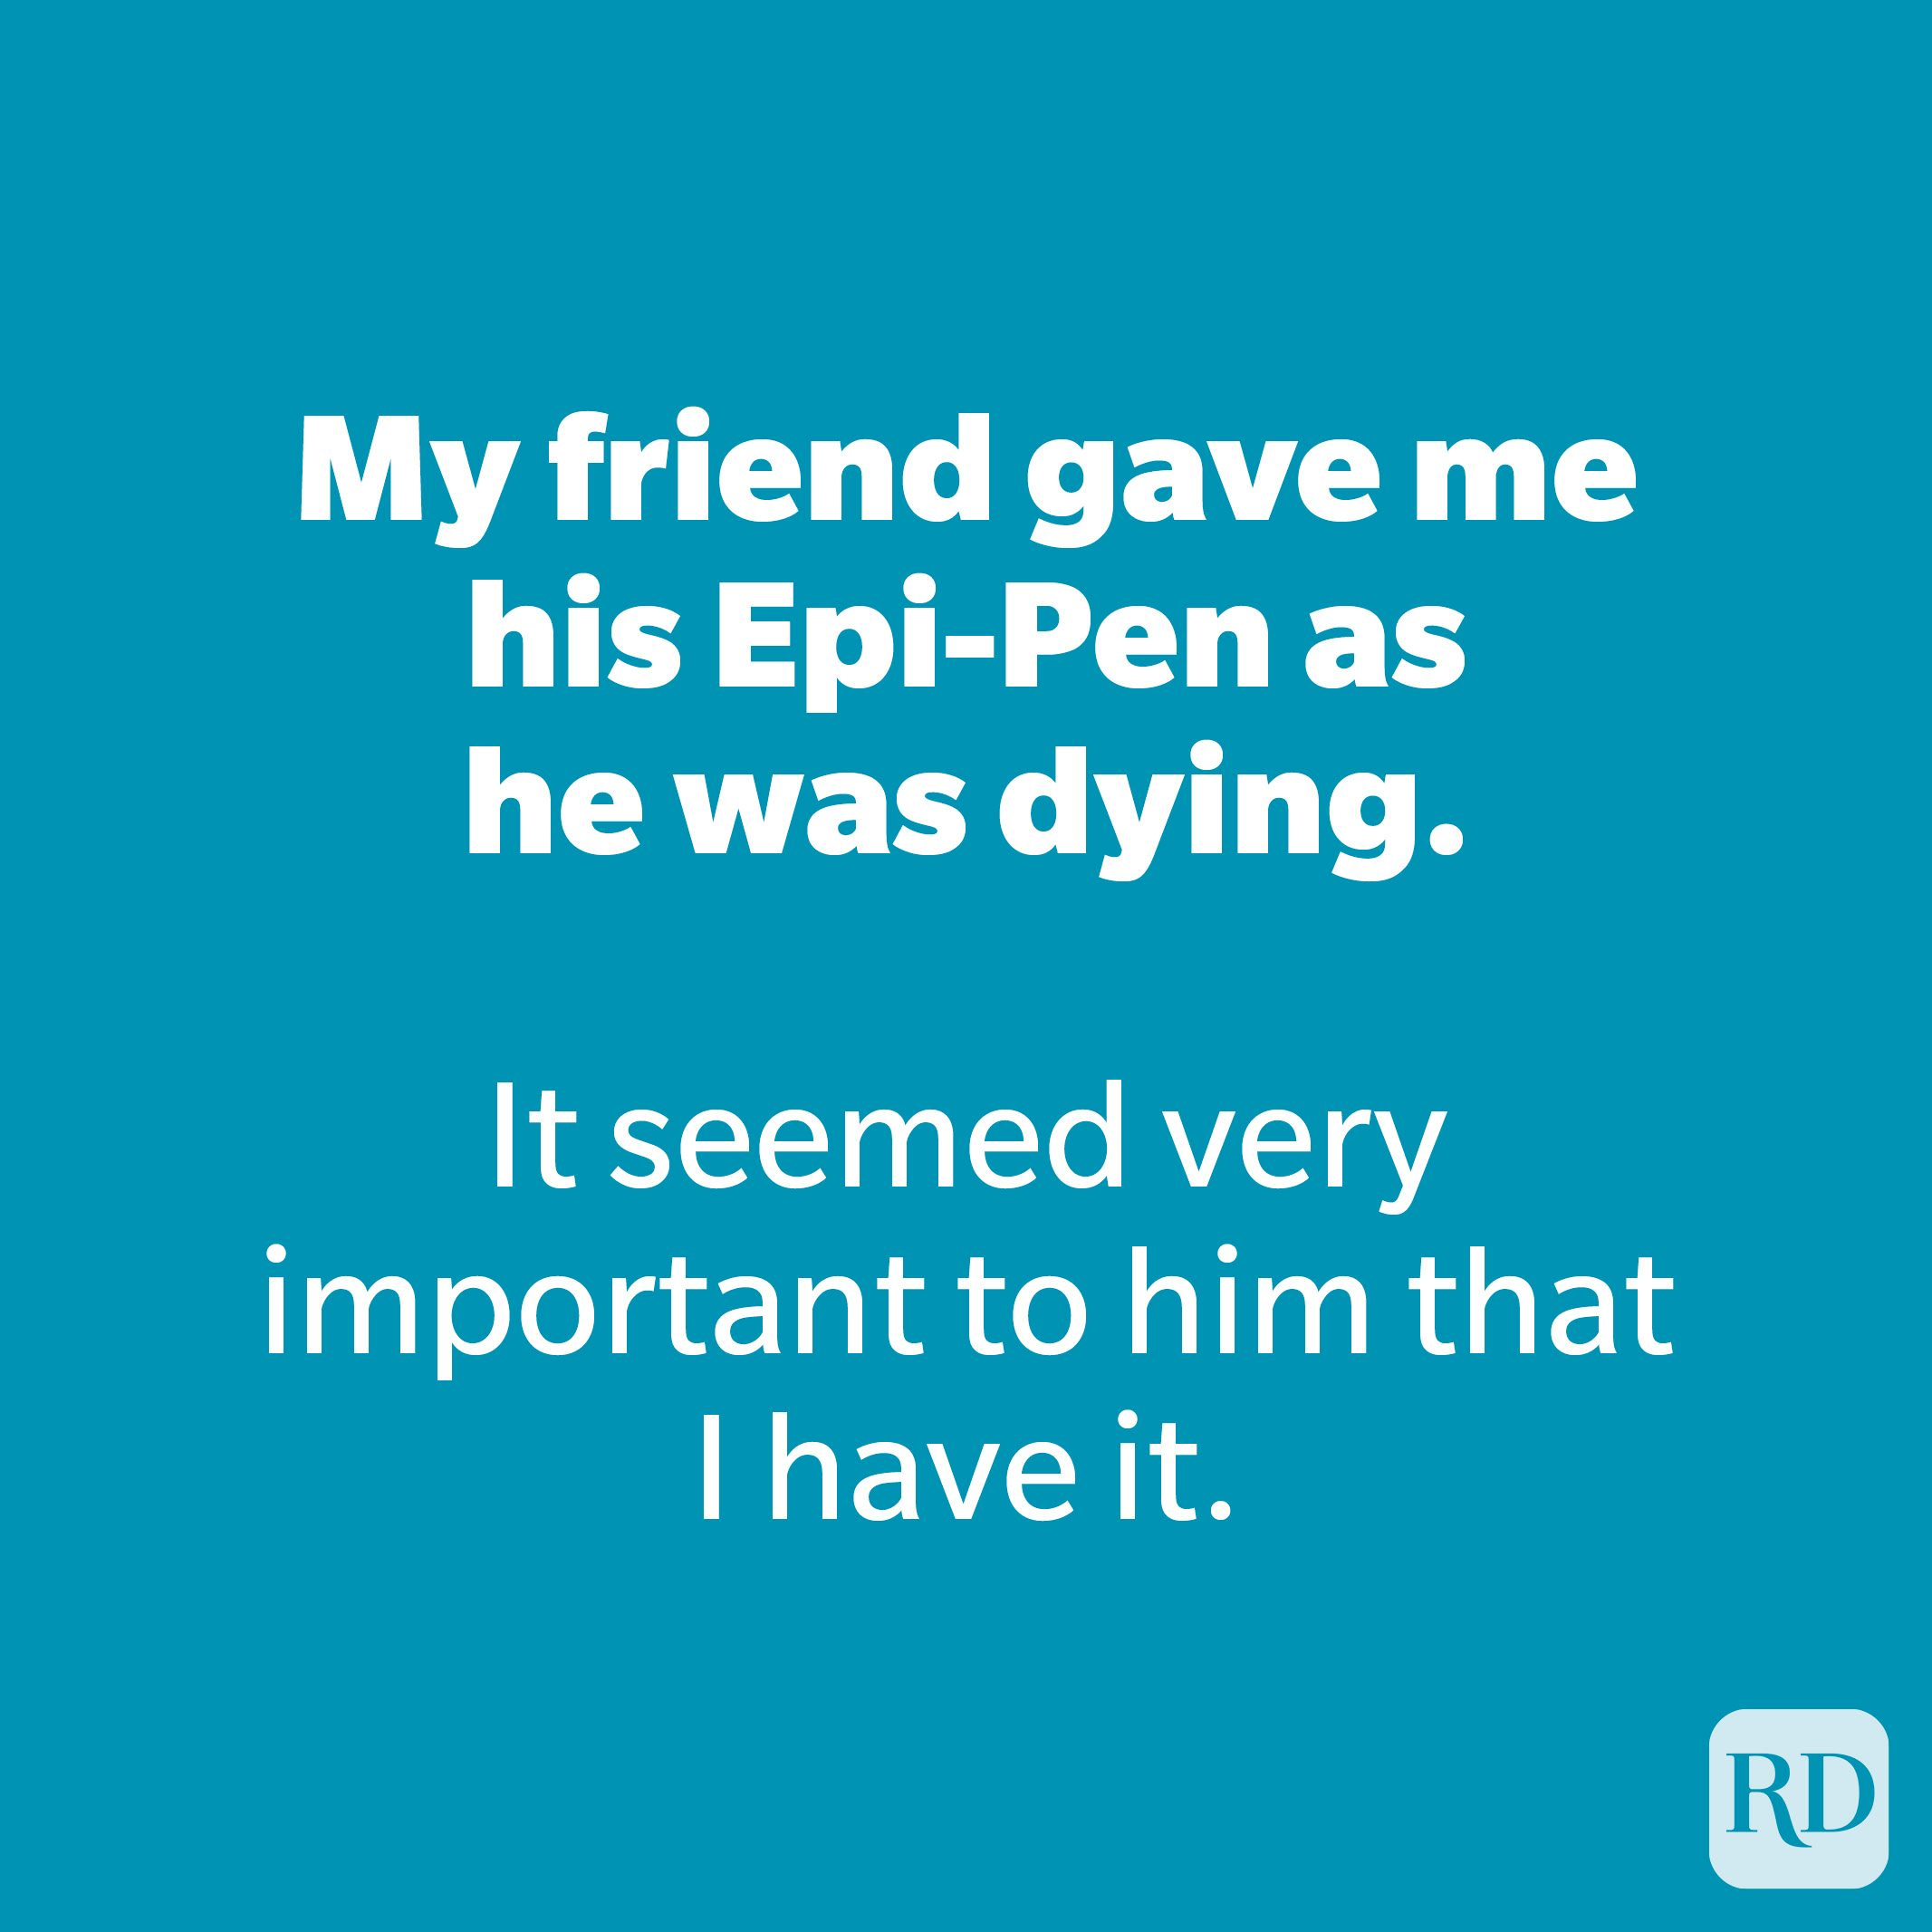 My friend gave me his Epi-Pen as he was dying.